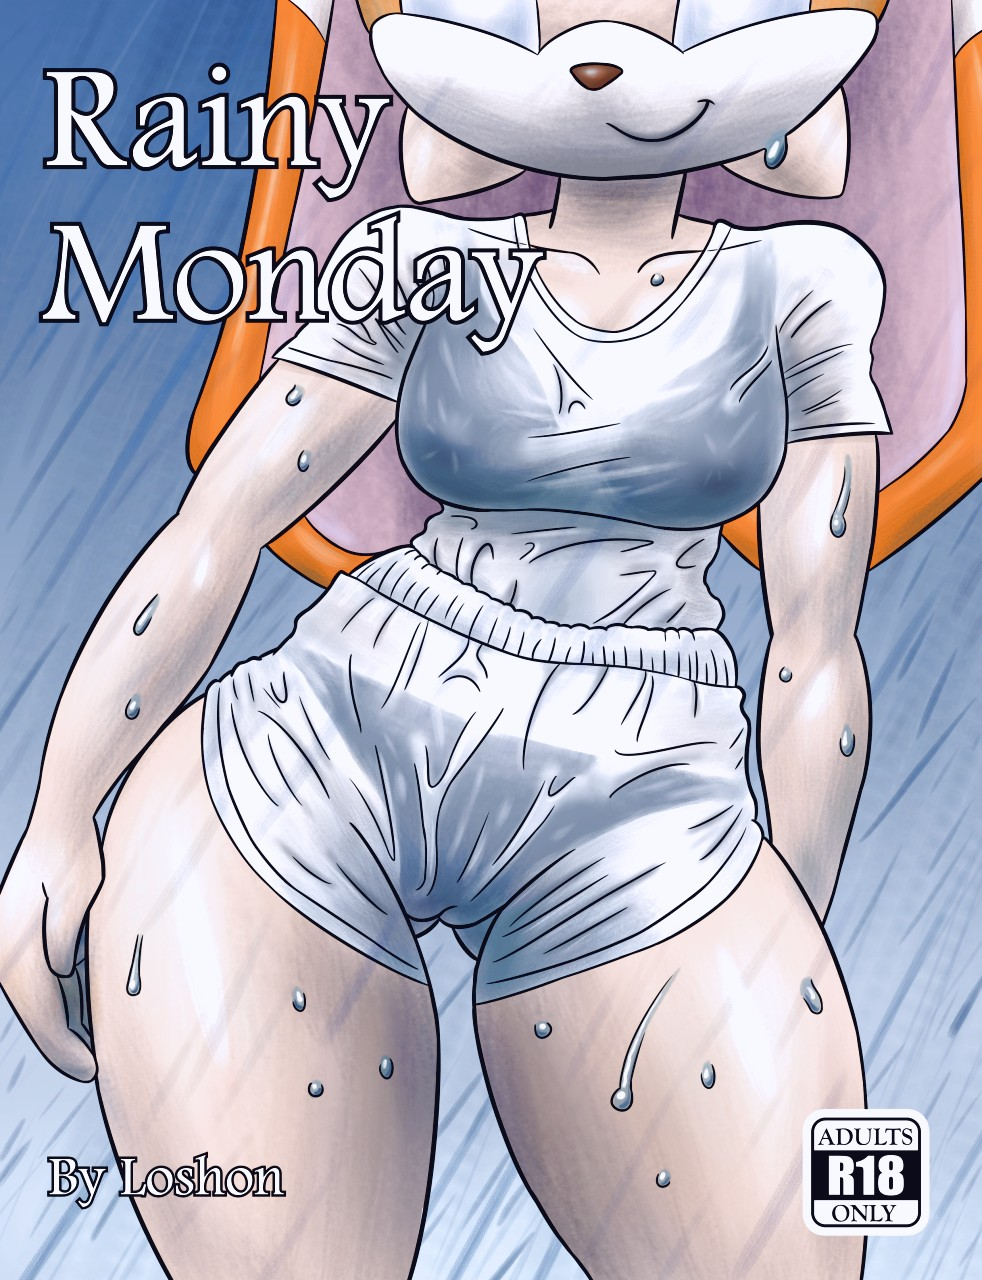 Rainy Monday porn comic page 01 on category Sonic The Hedgehog